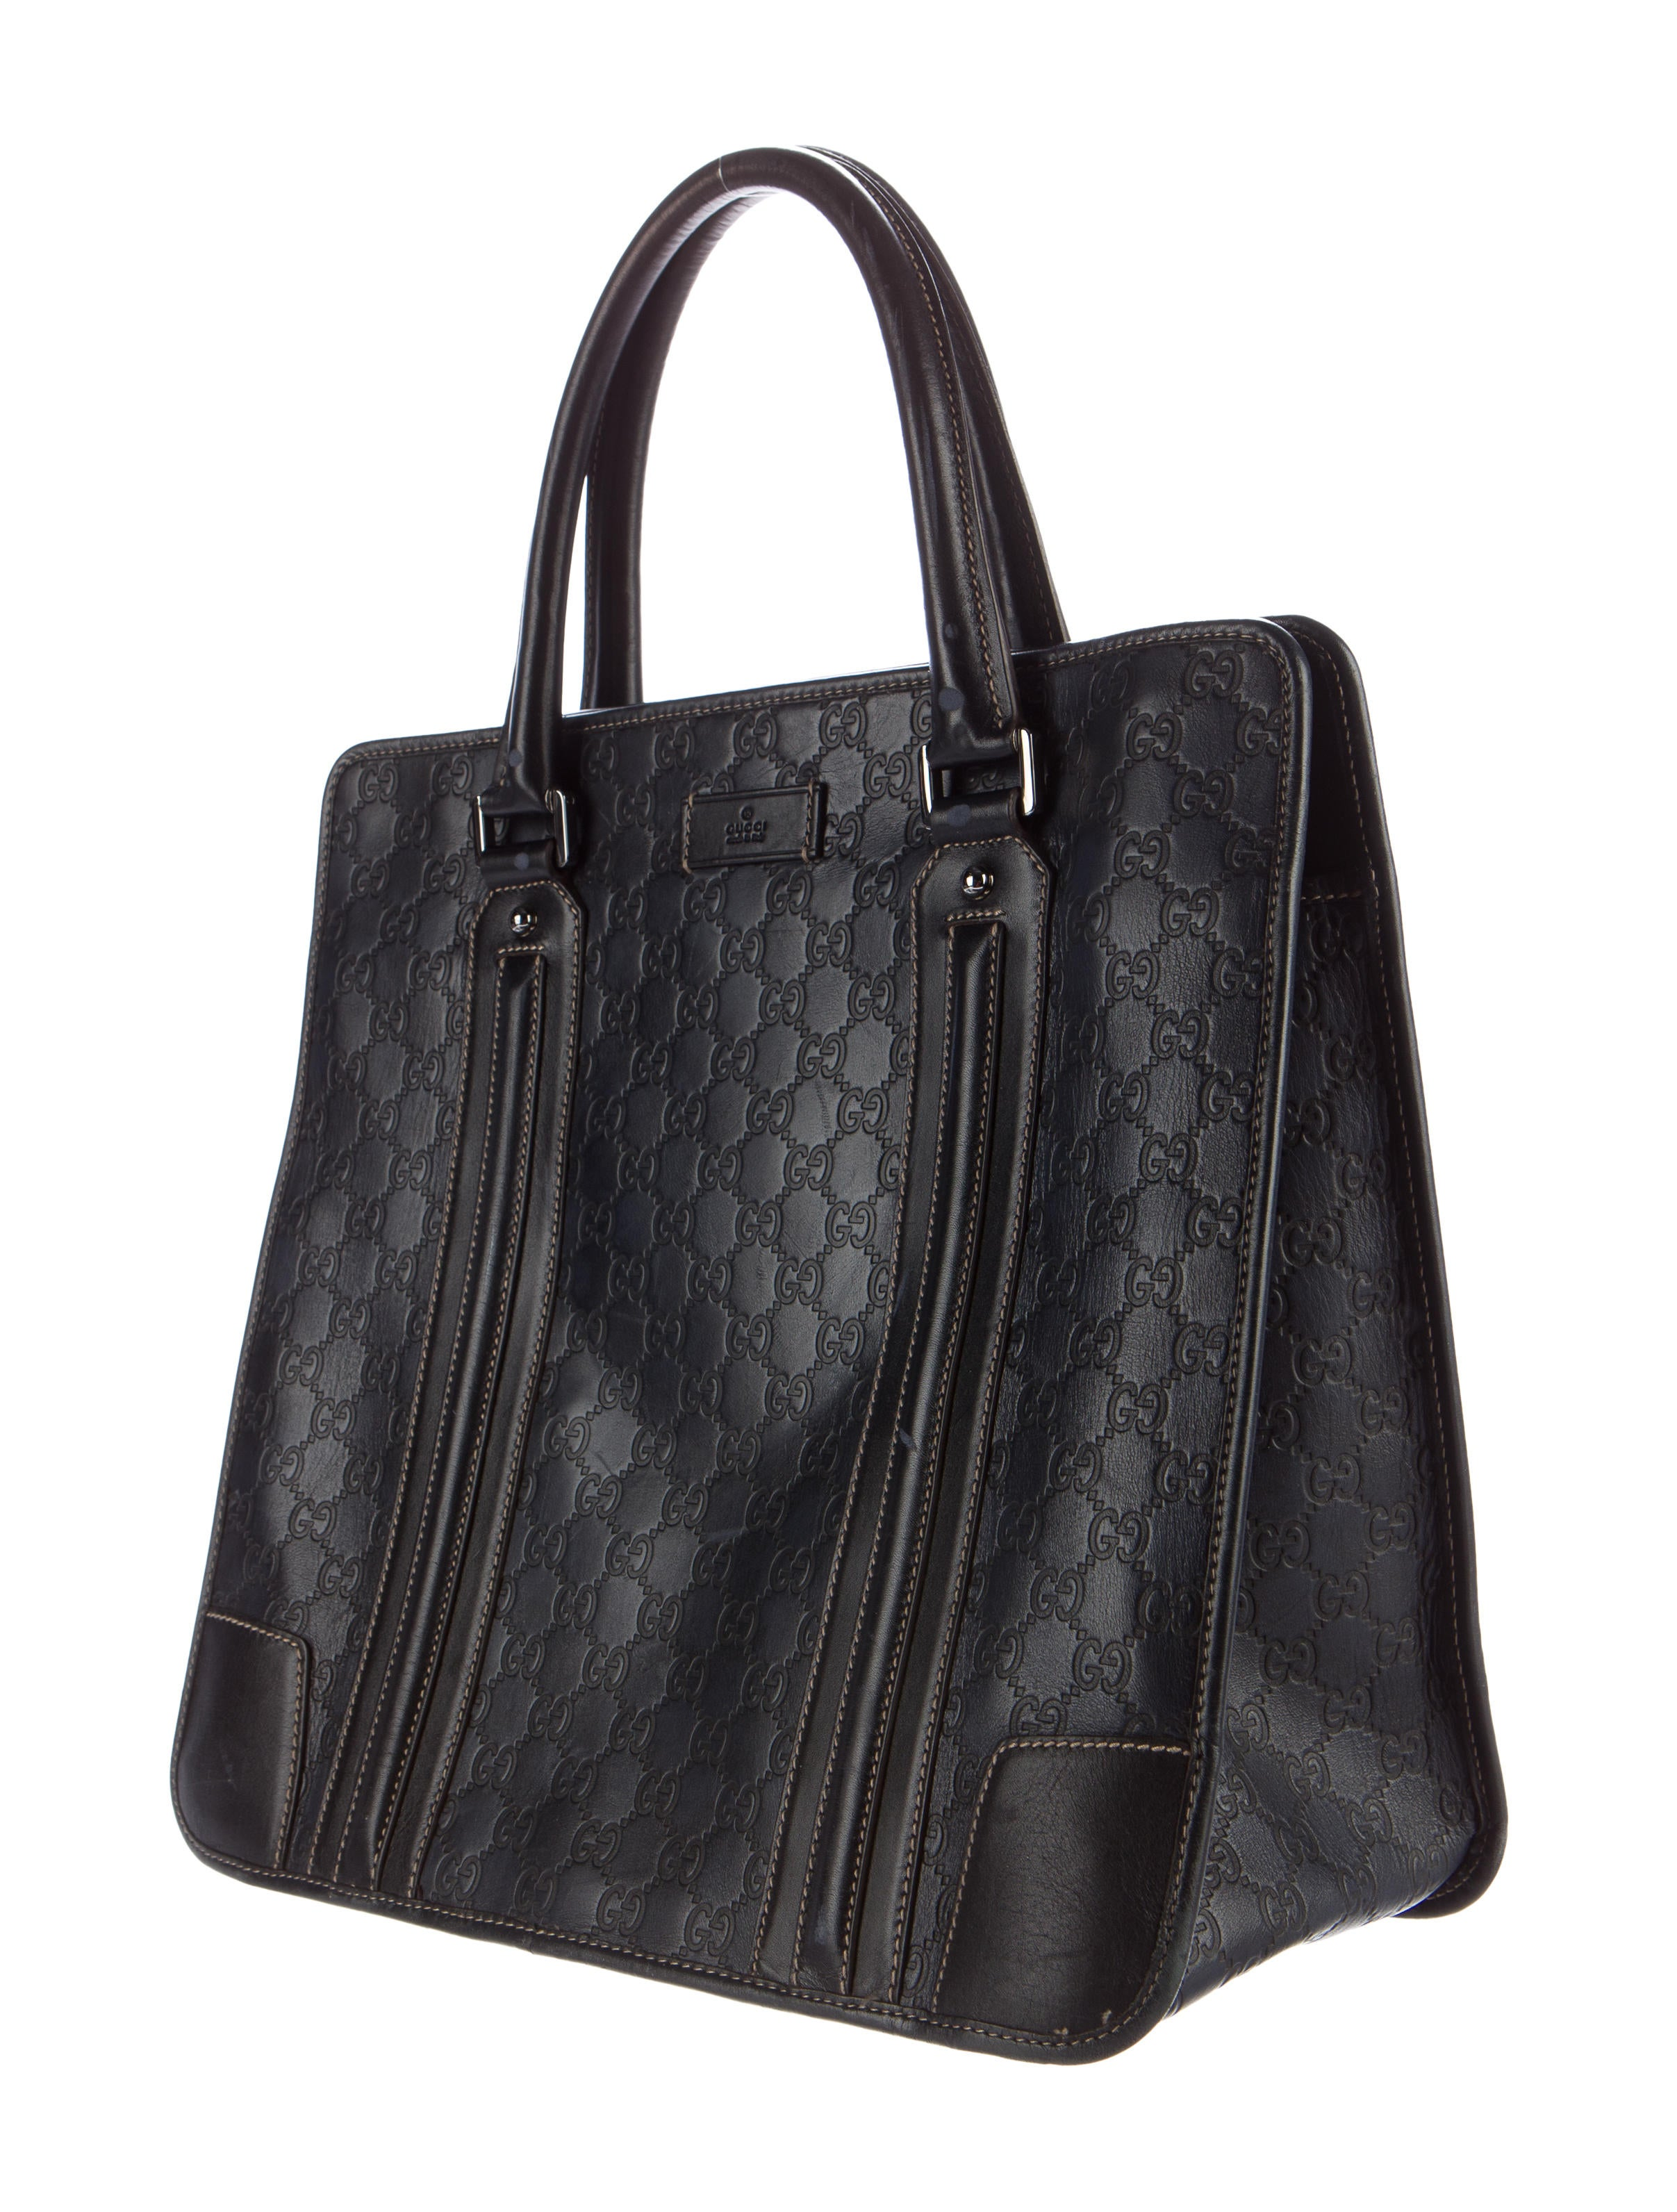 32111a512380 Gucci Shopper Tote Handbags | Stanford Center for Opportunity Policy ...